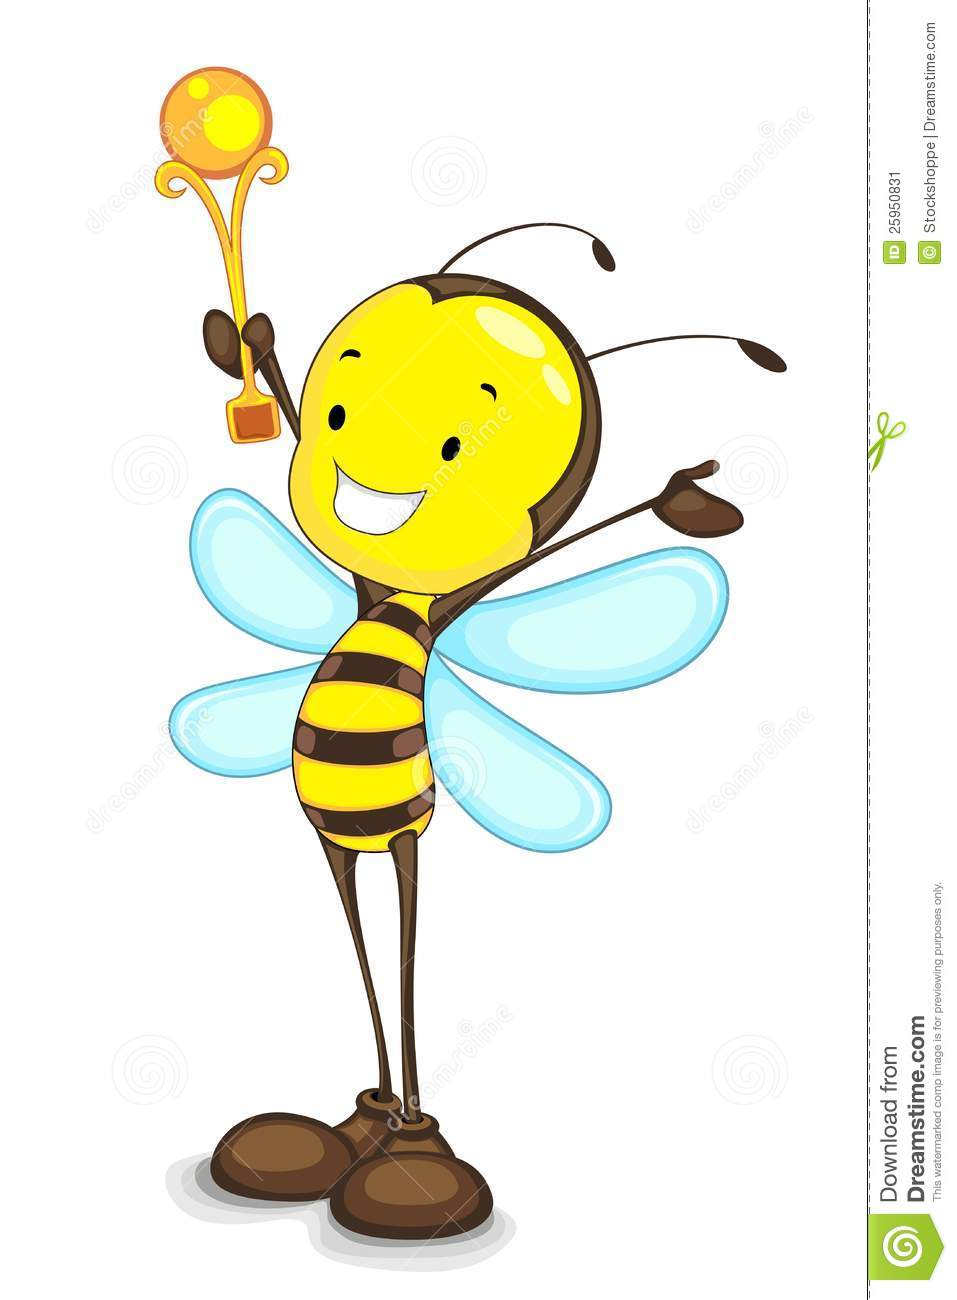 Bees clipart trophy Spelling%20bee%20clipart Clipart Spelling Bee Free